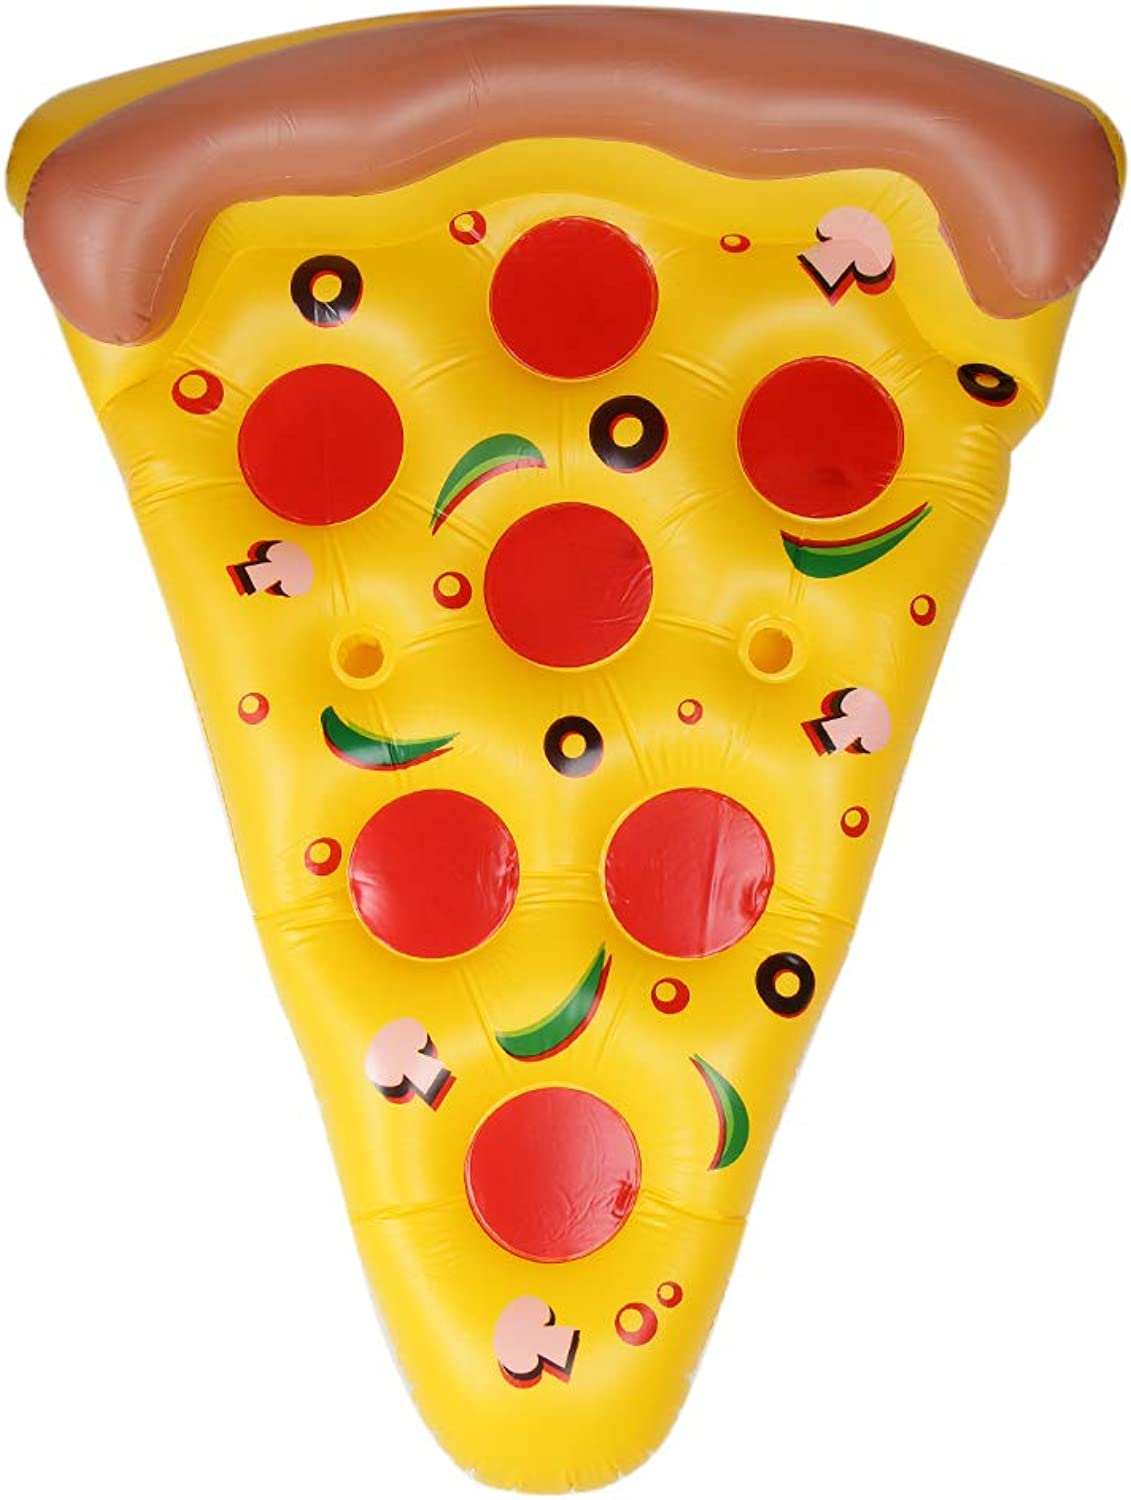 Homyl Inflatable Pizza Slice Summer Beach Lounger Float Swim Pool Air Tubes Water Toy